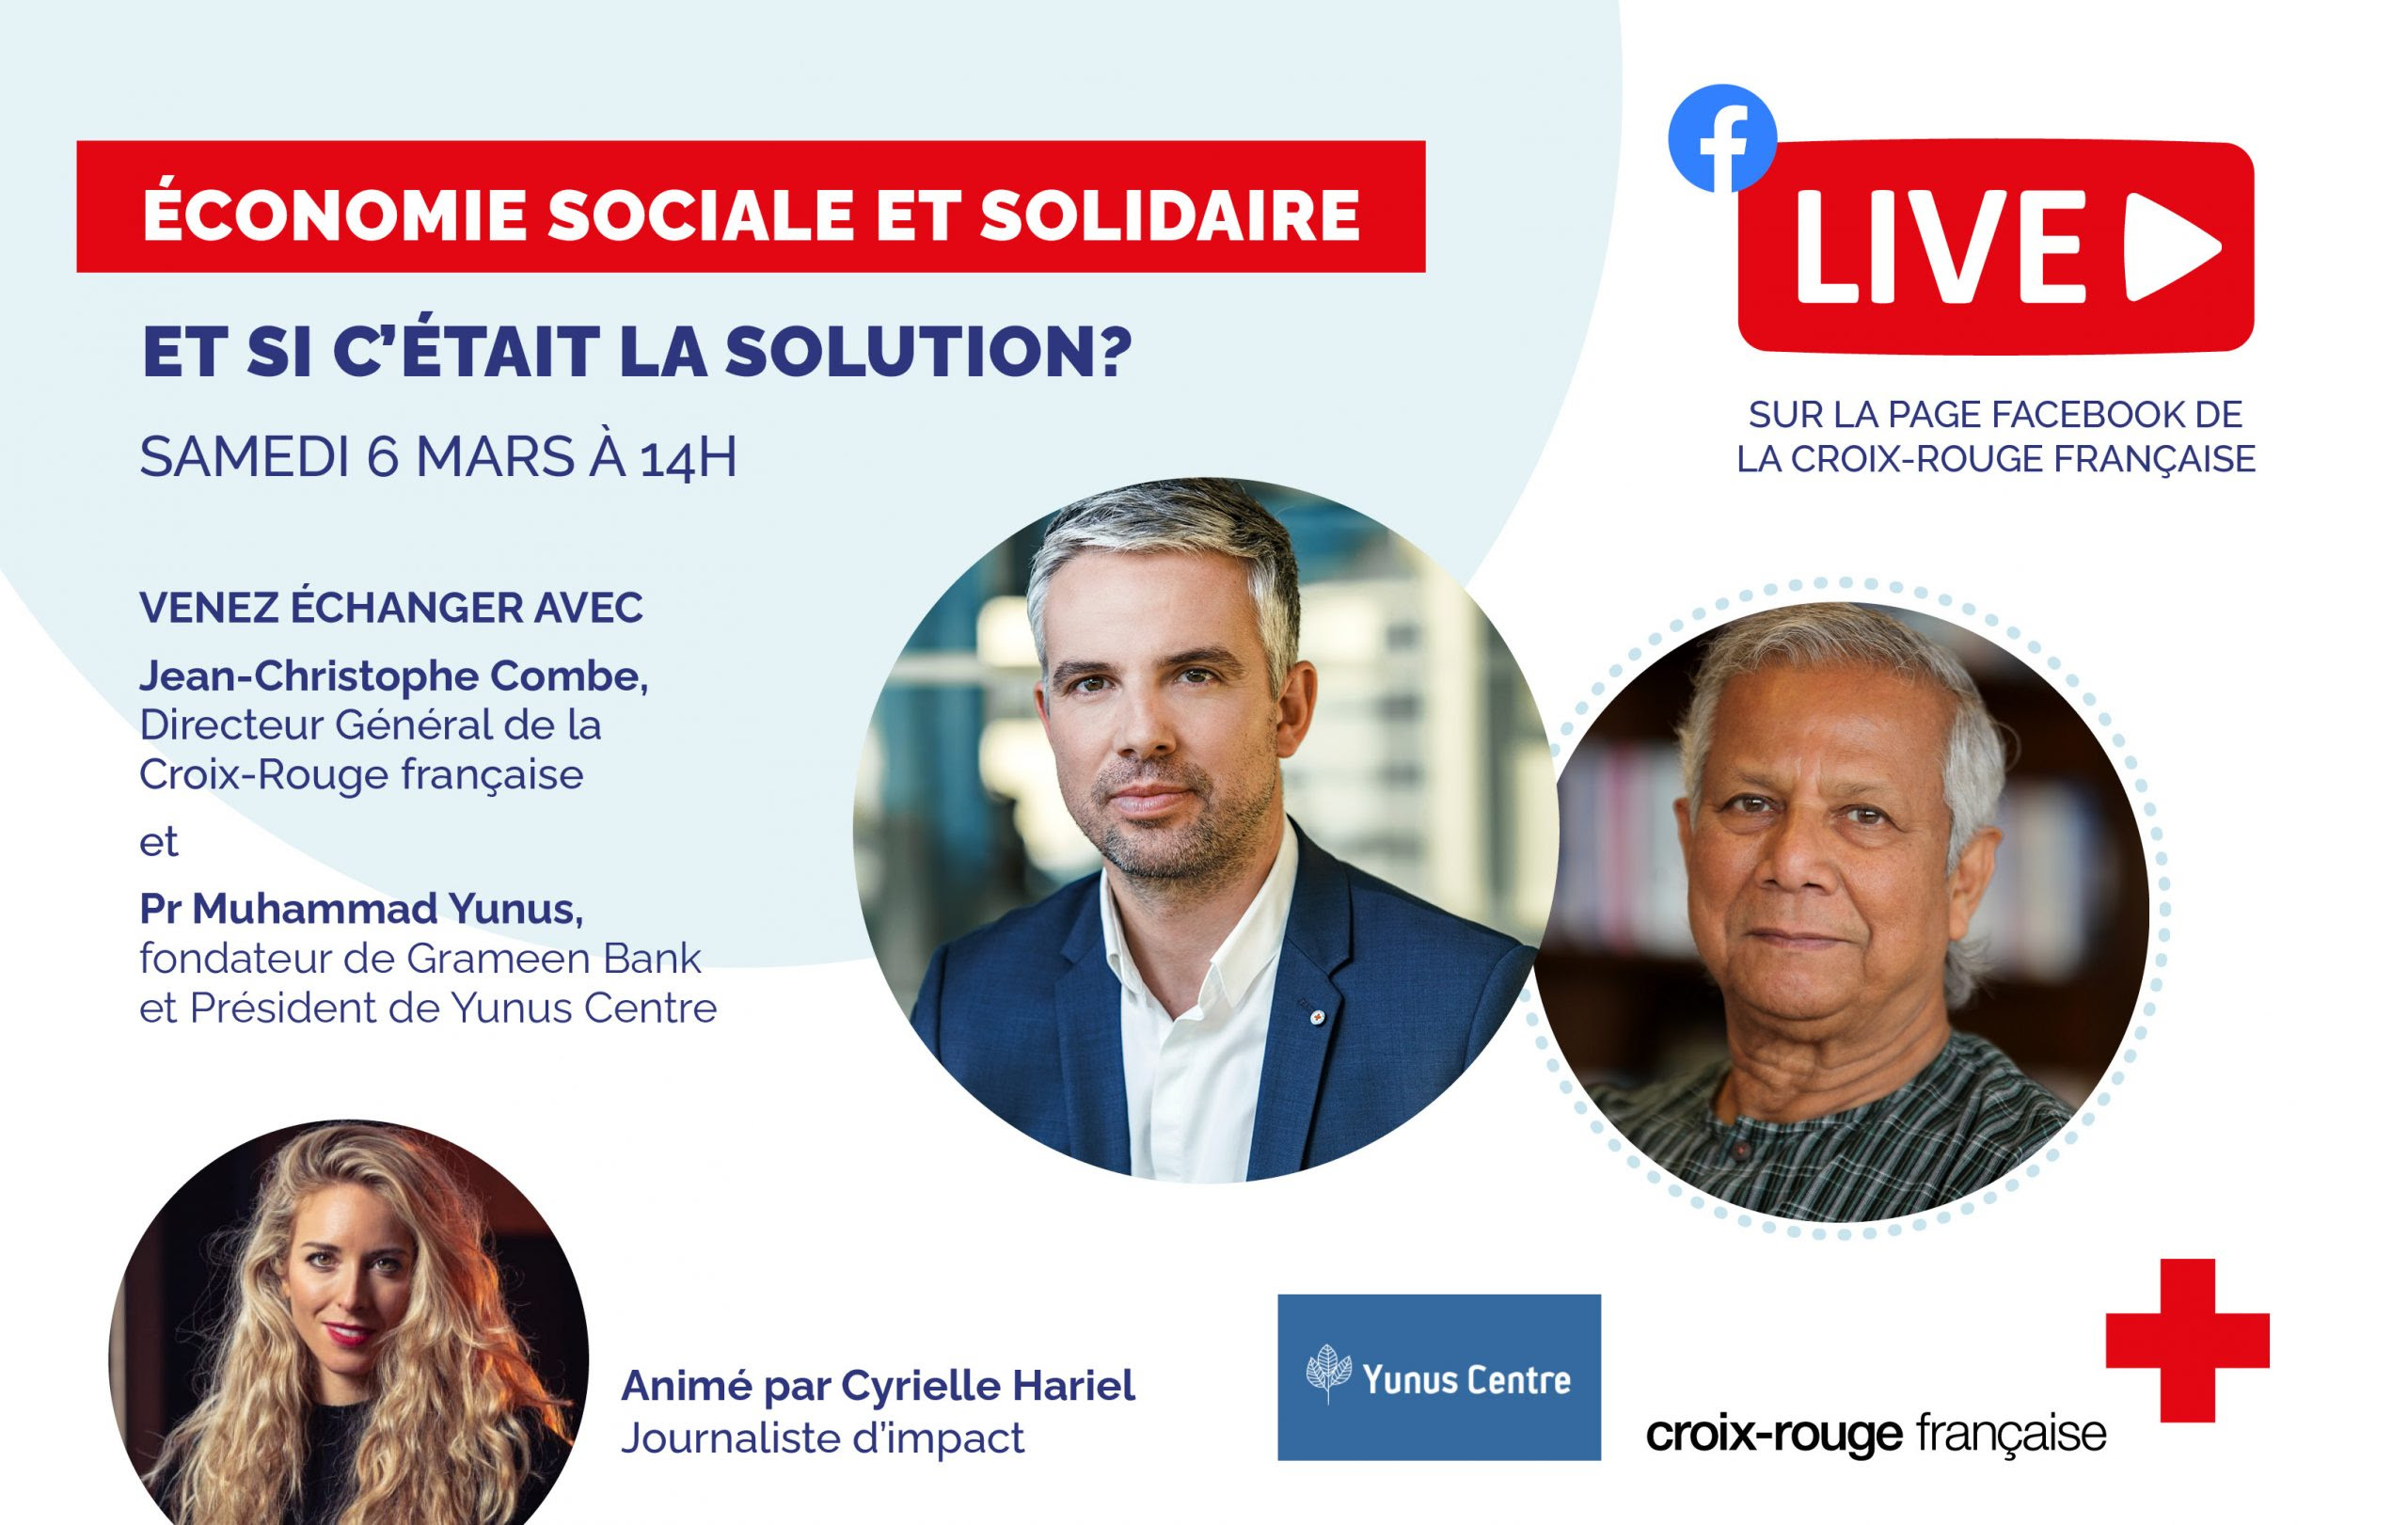 """What if Social Business was the solution?"".  Professor Muhammad Yunus and Jean-Christophe Combe, Executive Director of the French Red Cross, are converging in their analysis of the on-going crisis and their vision how to make a better world post-COVID-19, a 3zeros World (with Zero Poverty, Zero Wealth Concentration and Zero Net Carbon emission).     French Red Cross and Professor Yunus teams are developing their partnership aimed to produce a positive social impact and give to all access to quality healthcare services."